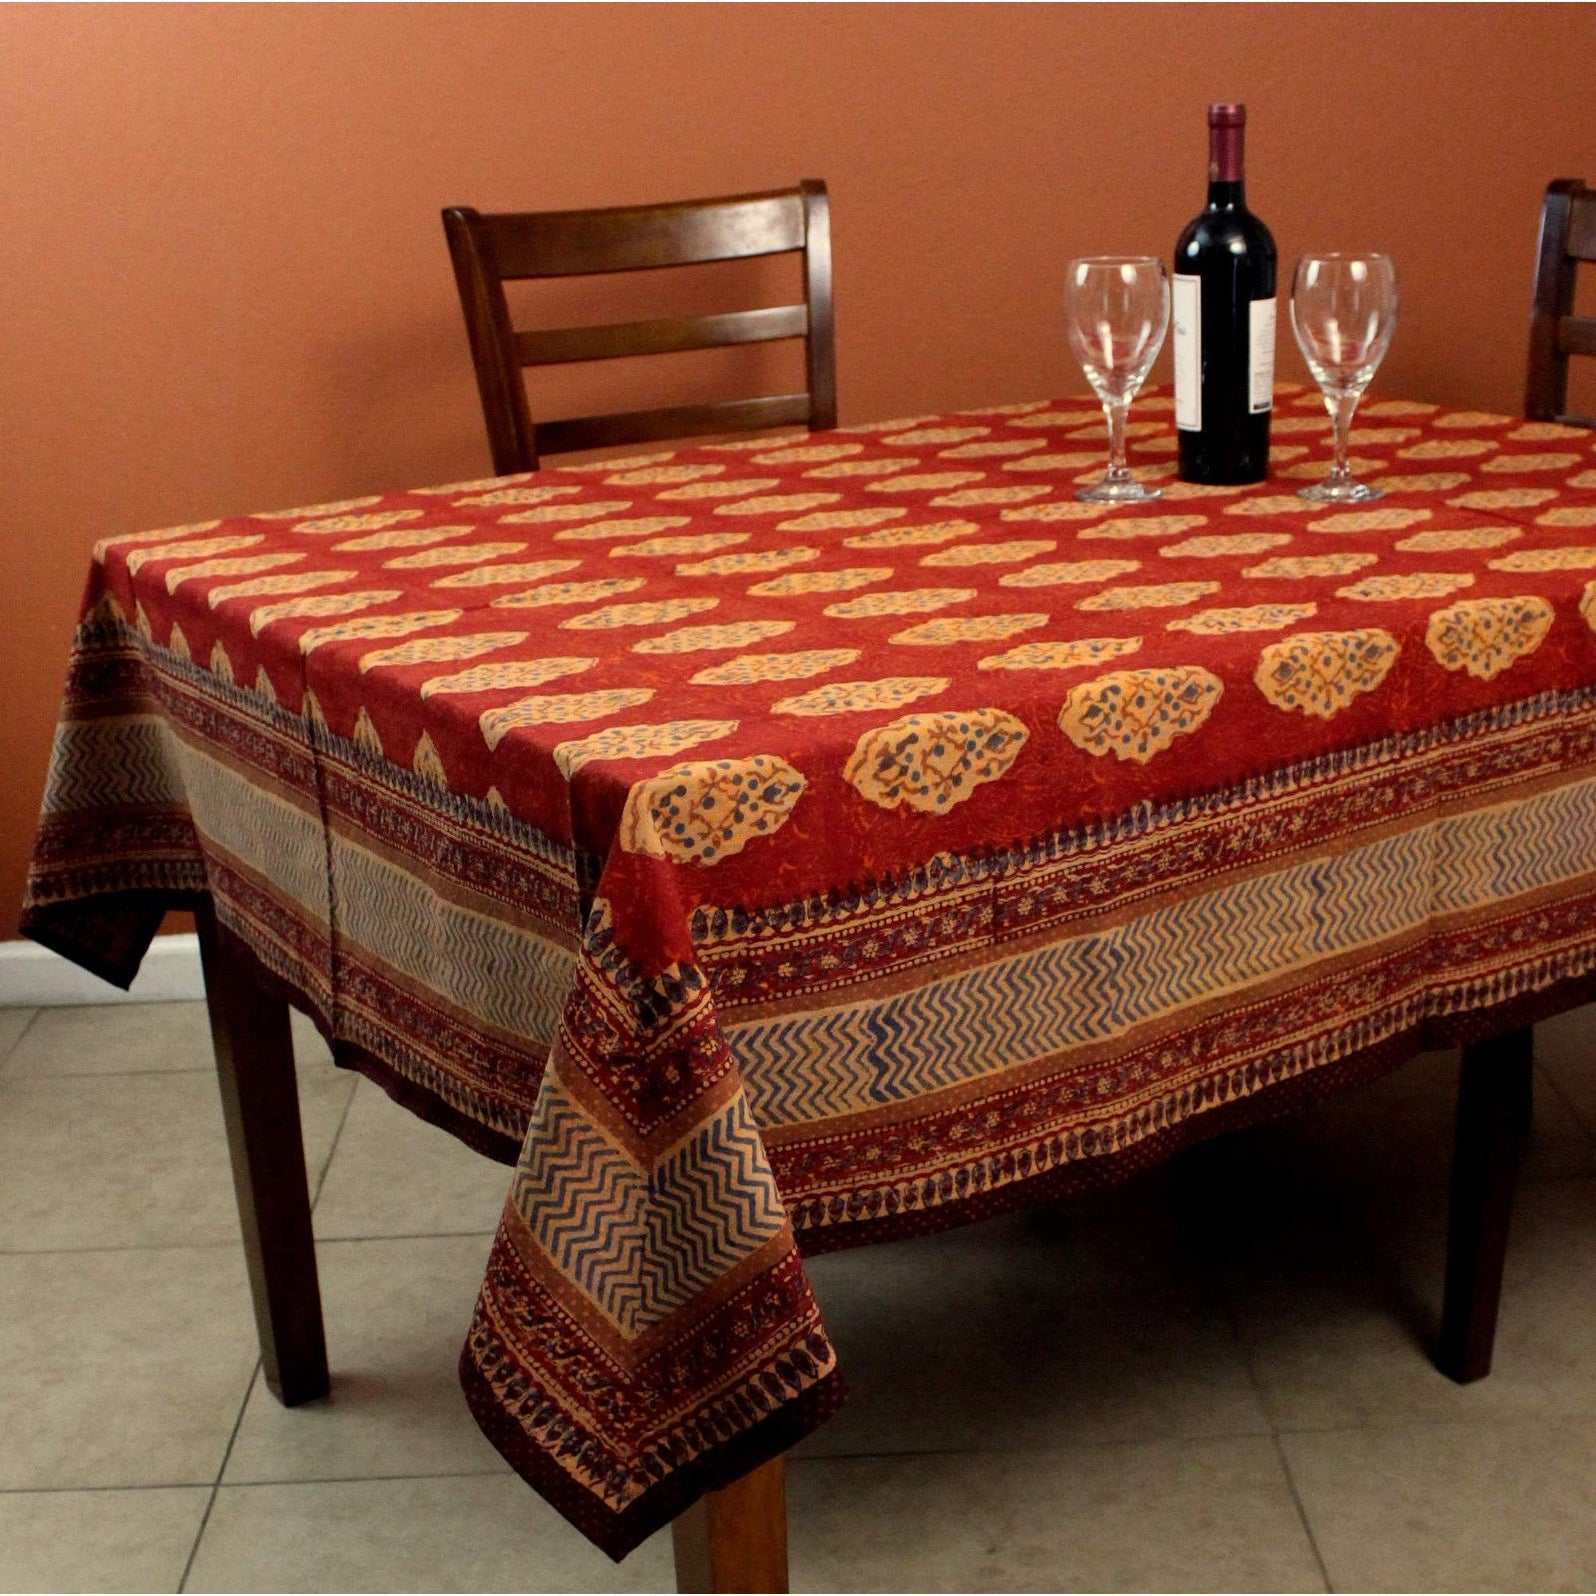 Cotton Kensington Block Print Tablecloth Rectangular Square Round Rust Brown - Thumbnail 0